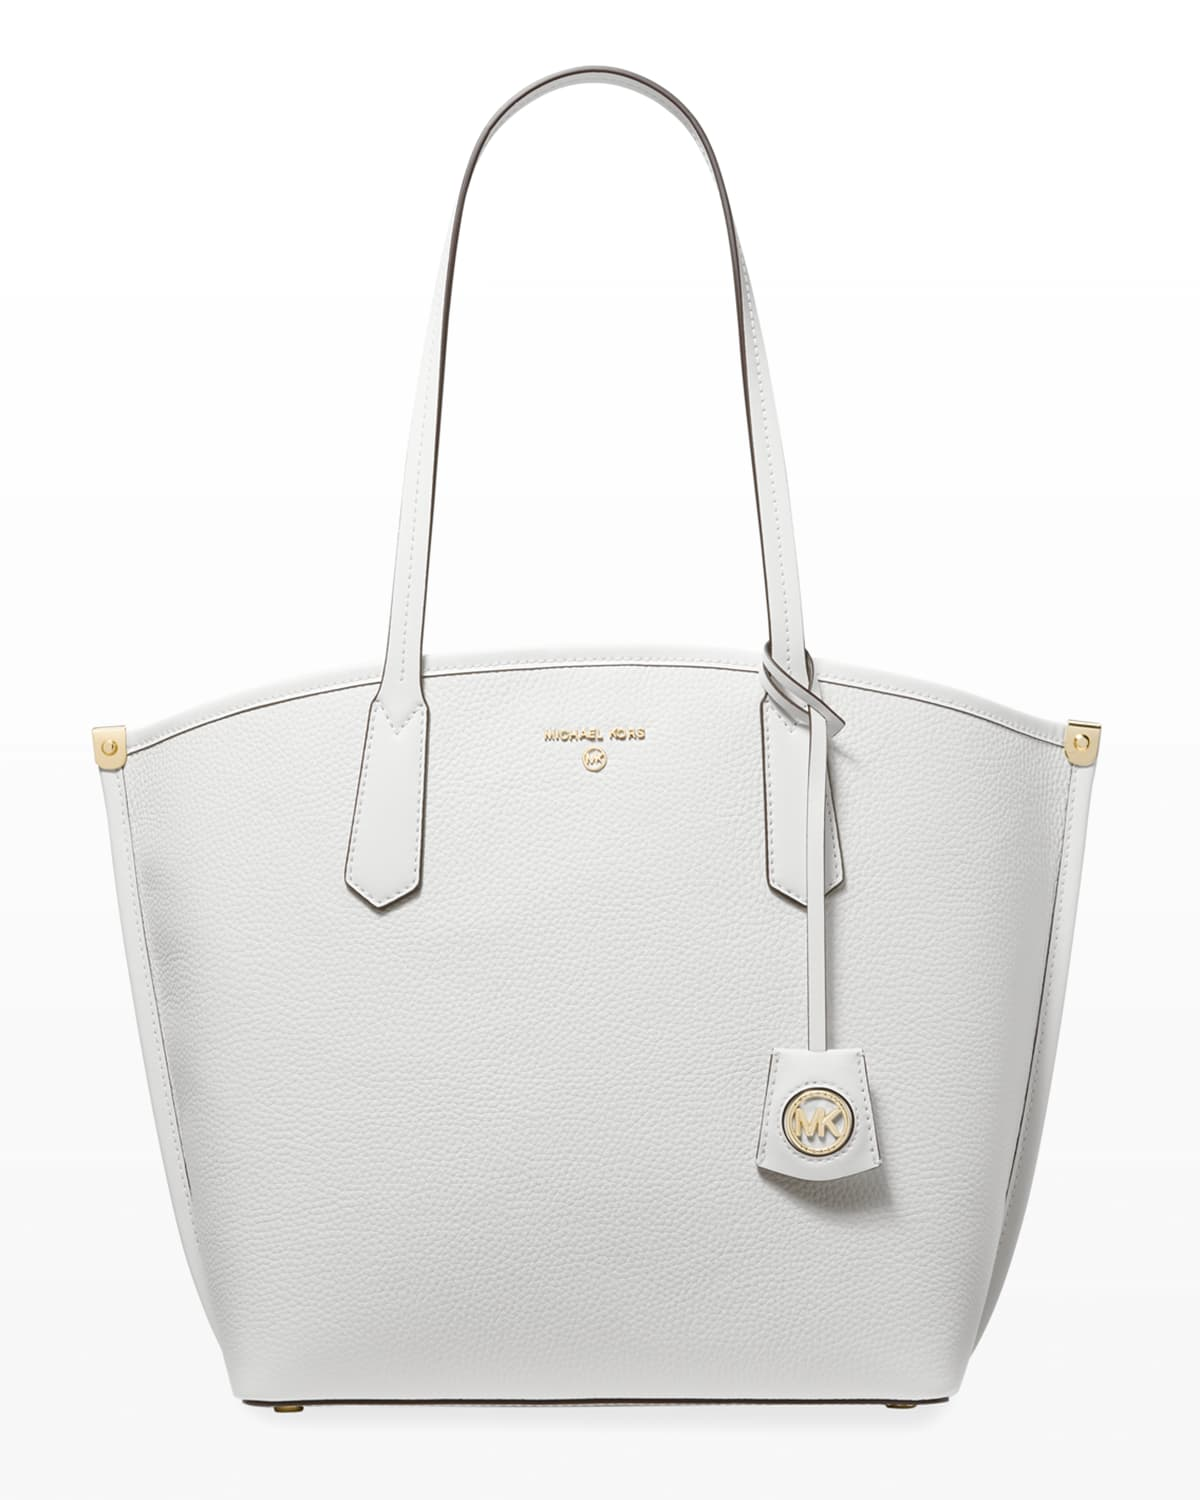 Jane Large Leather Tote Bag